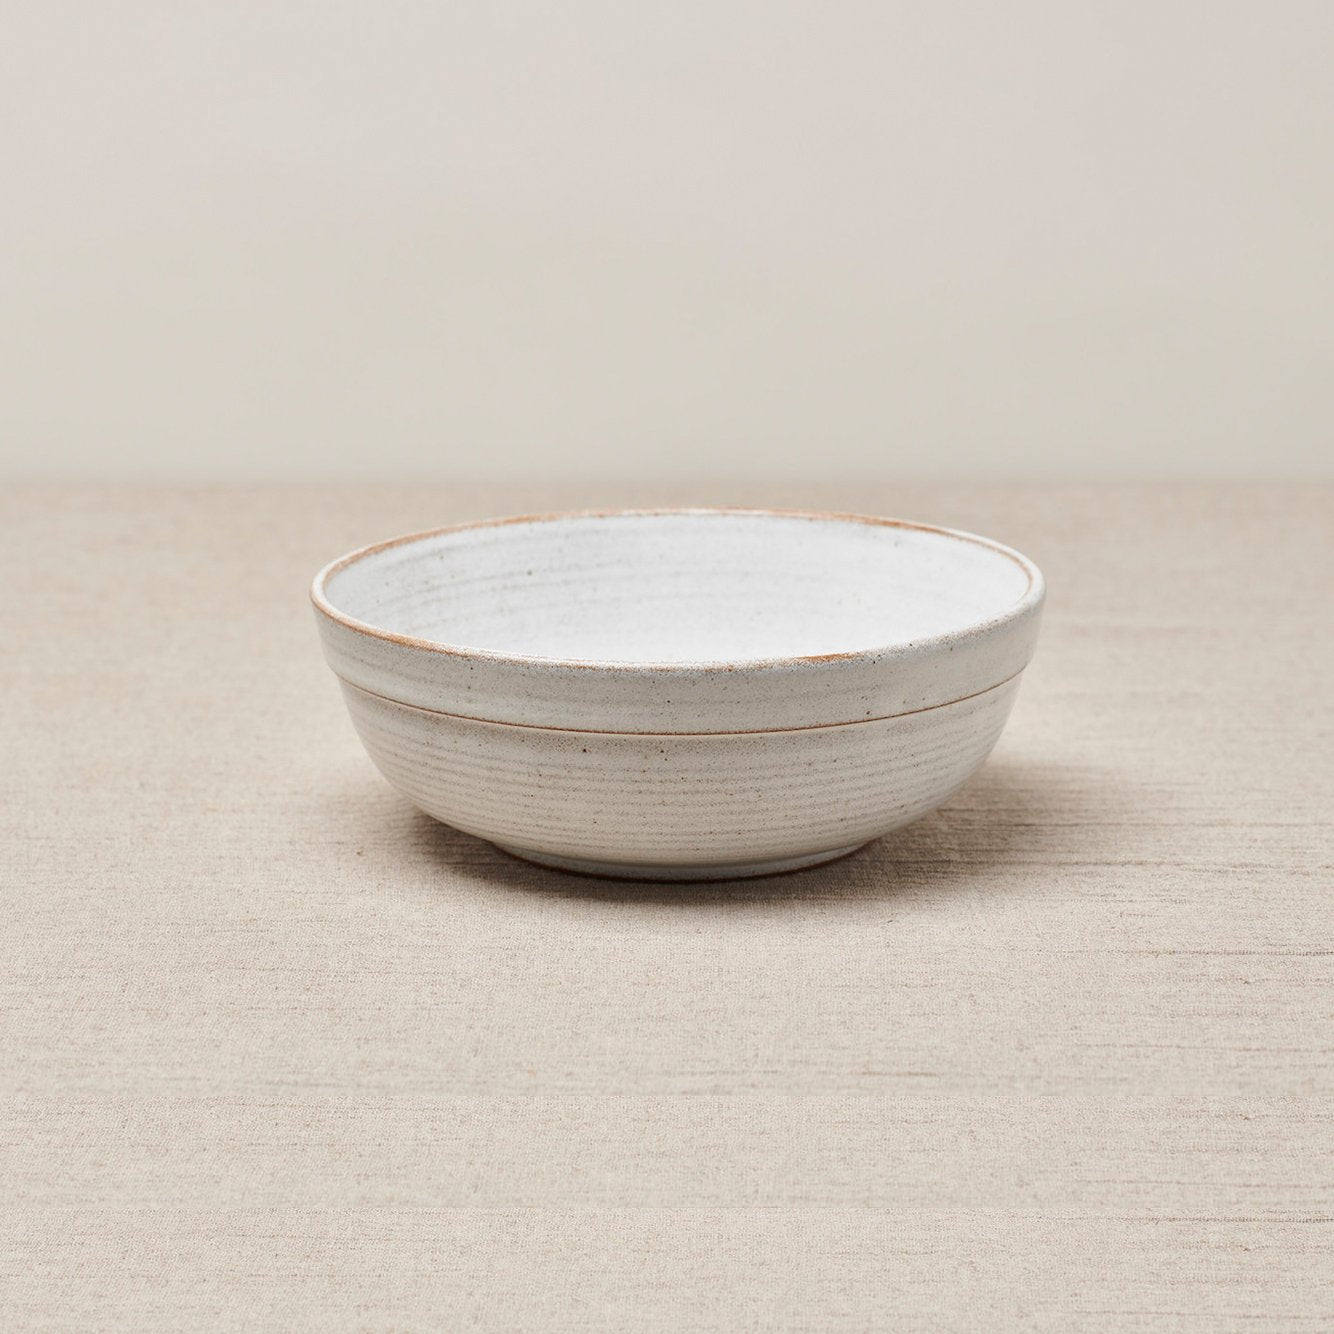 Muji Salad Bowl by Cisco and the Sun